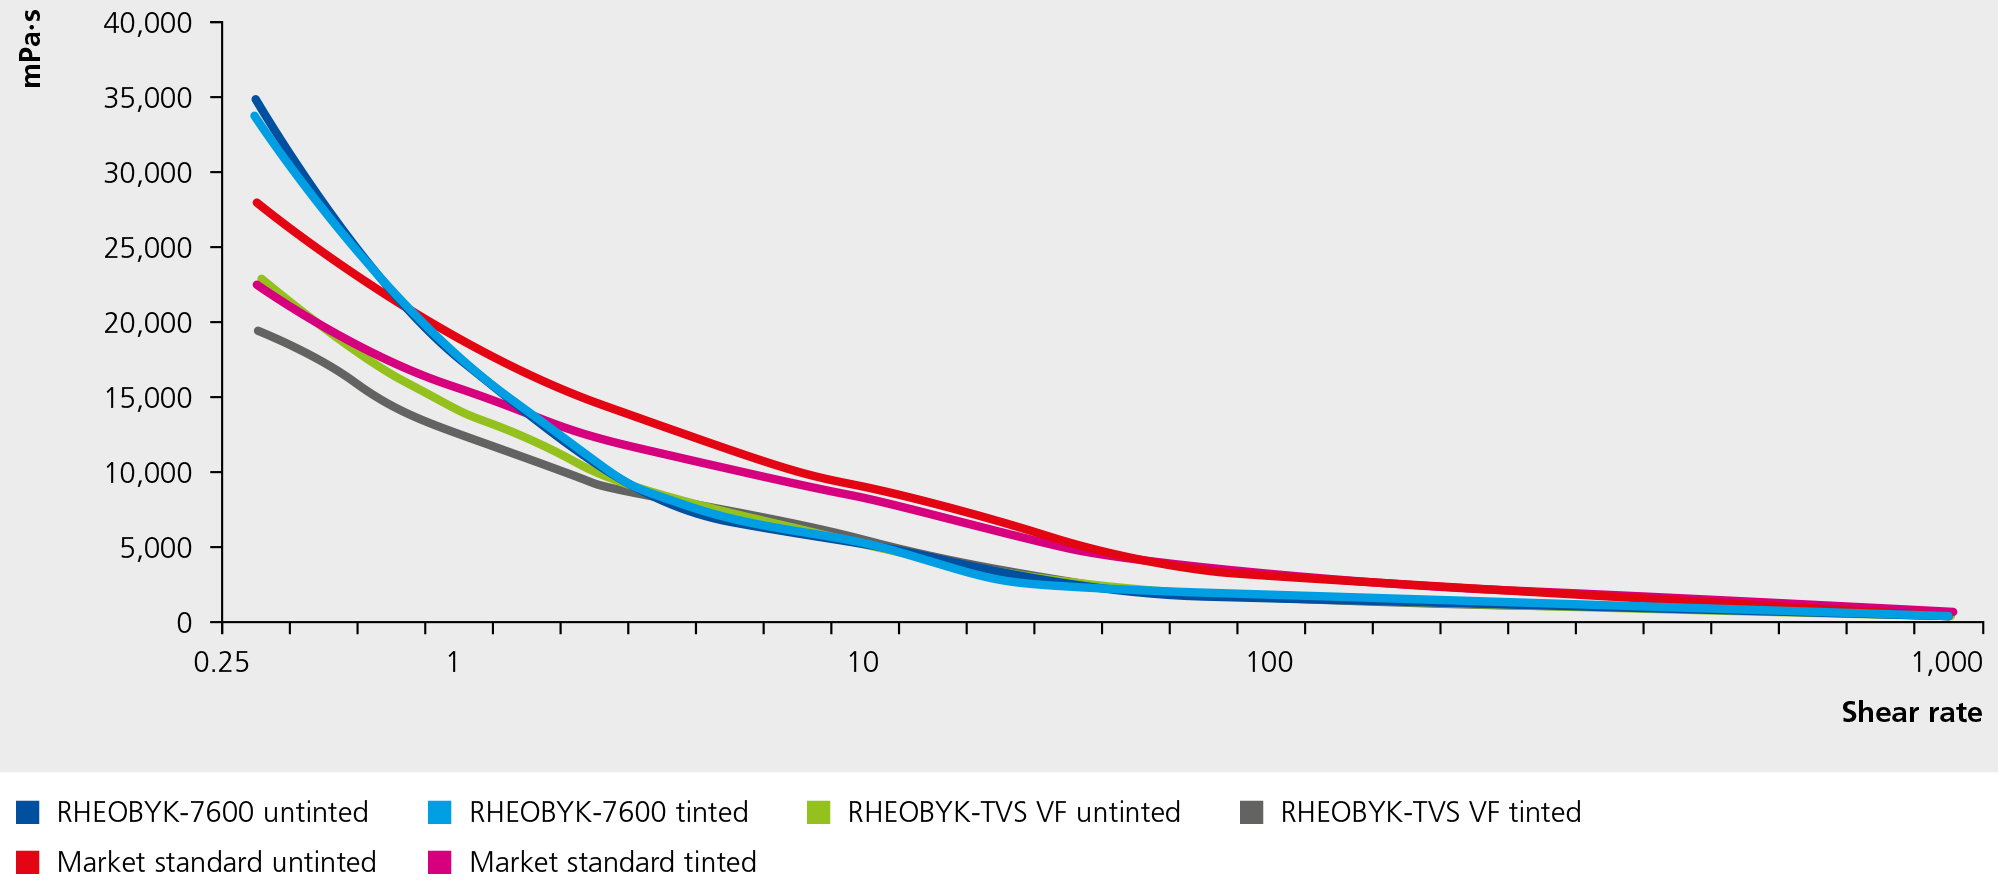 RHEOBYK-7600 – Very Good Viscosity Stability After Tinting